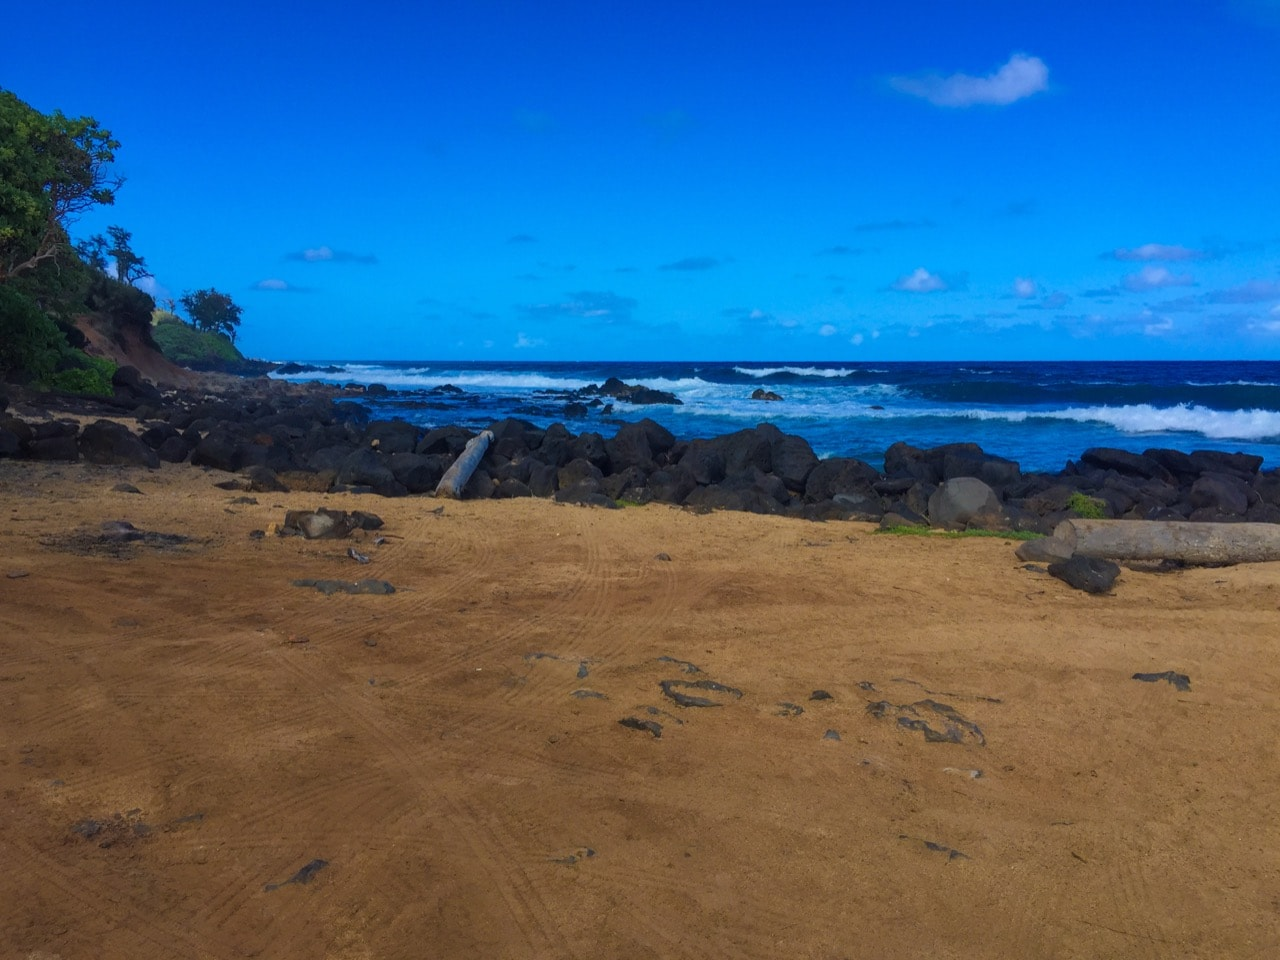 kauai wedding location choose your favorite place to get married on